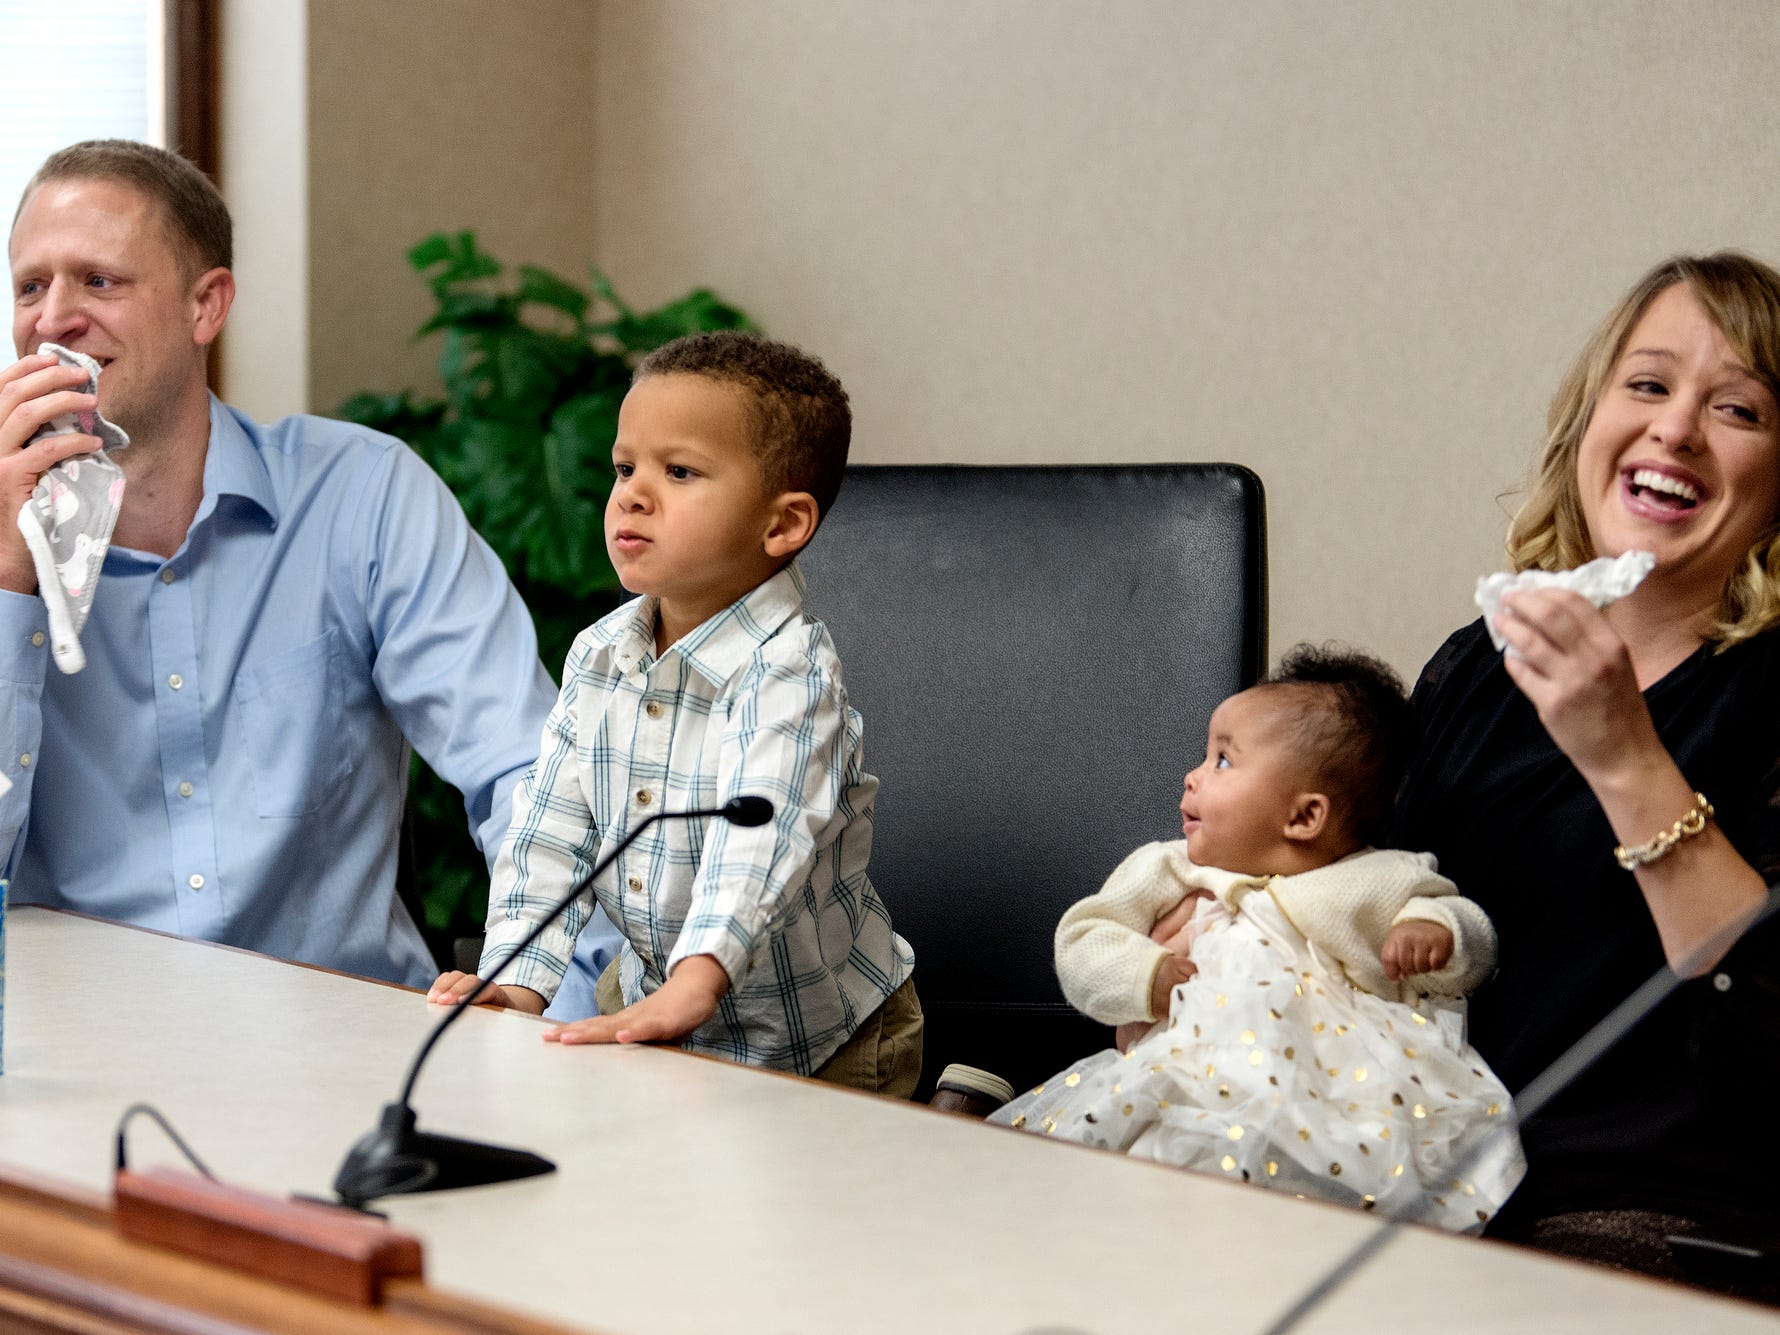 Jami Thelen, left, and his wife Erin, right, laugh as their first adopted son 2-year-old Jaxon, center, hams it up for the crowd during the adoption finalization of 5-month-old Ella at a ceremony inside the Clinton County Courthouse in St. Johns. Four families finalized the adoptions of six children.